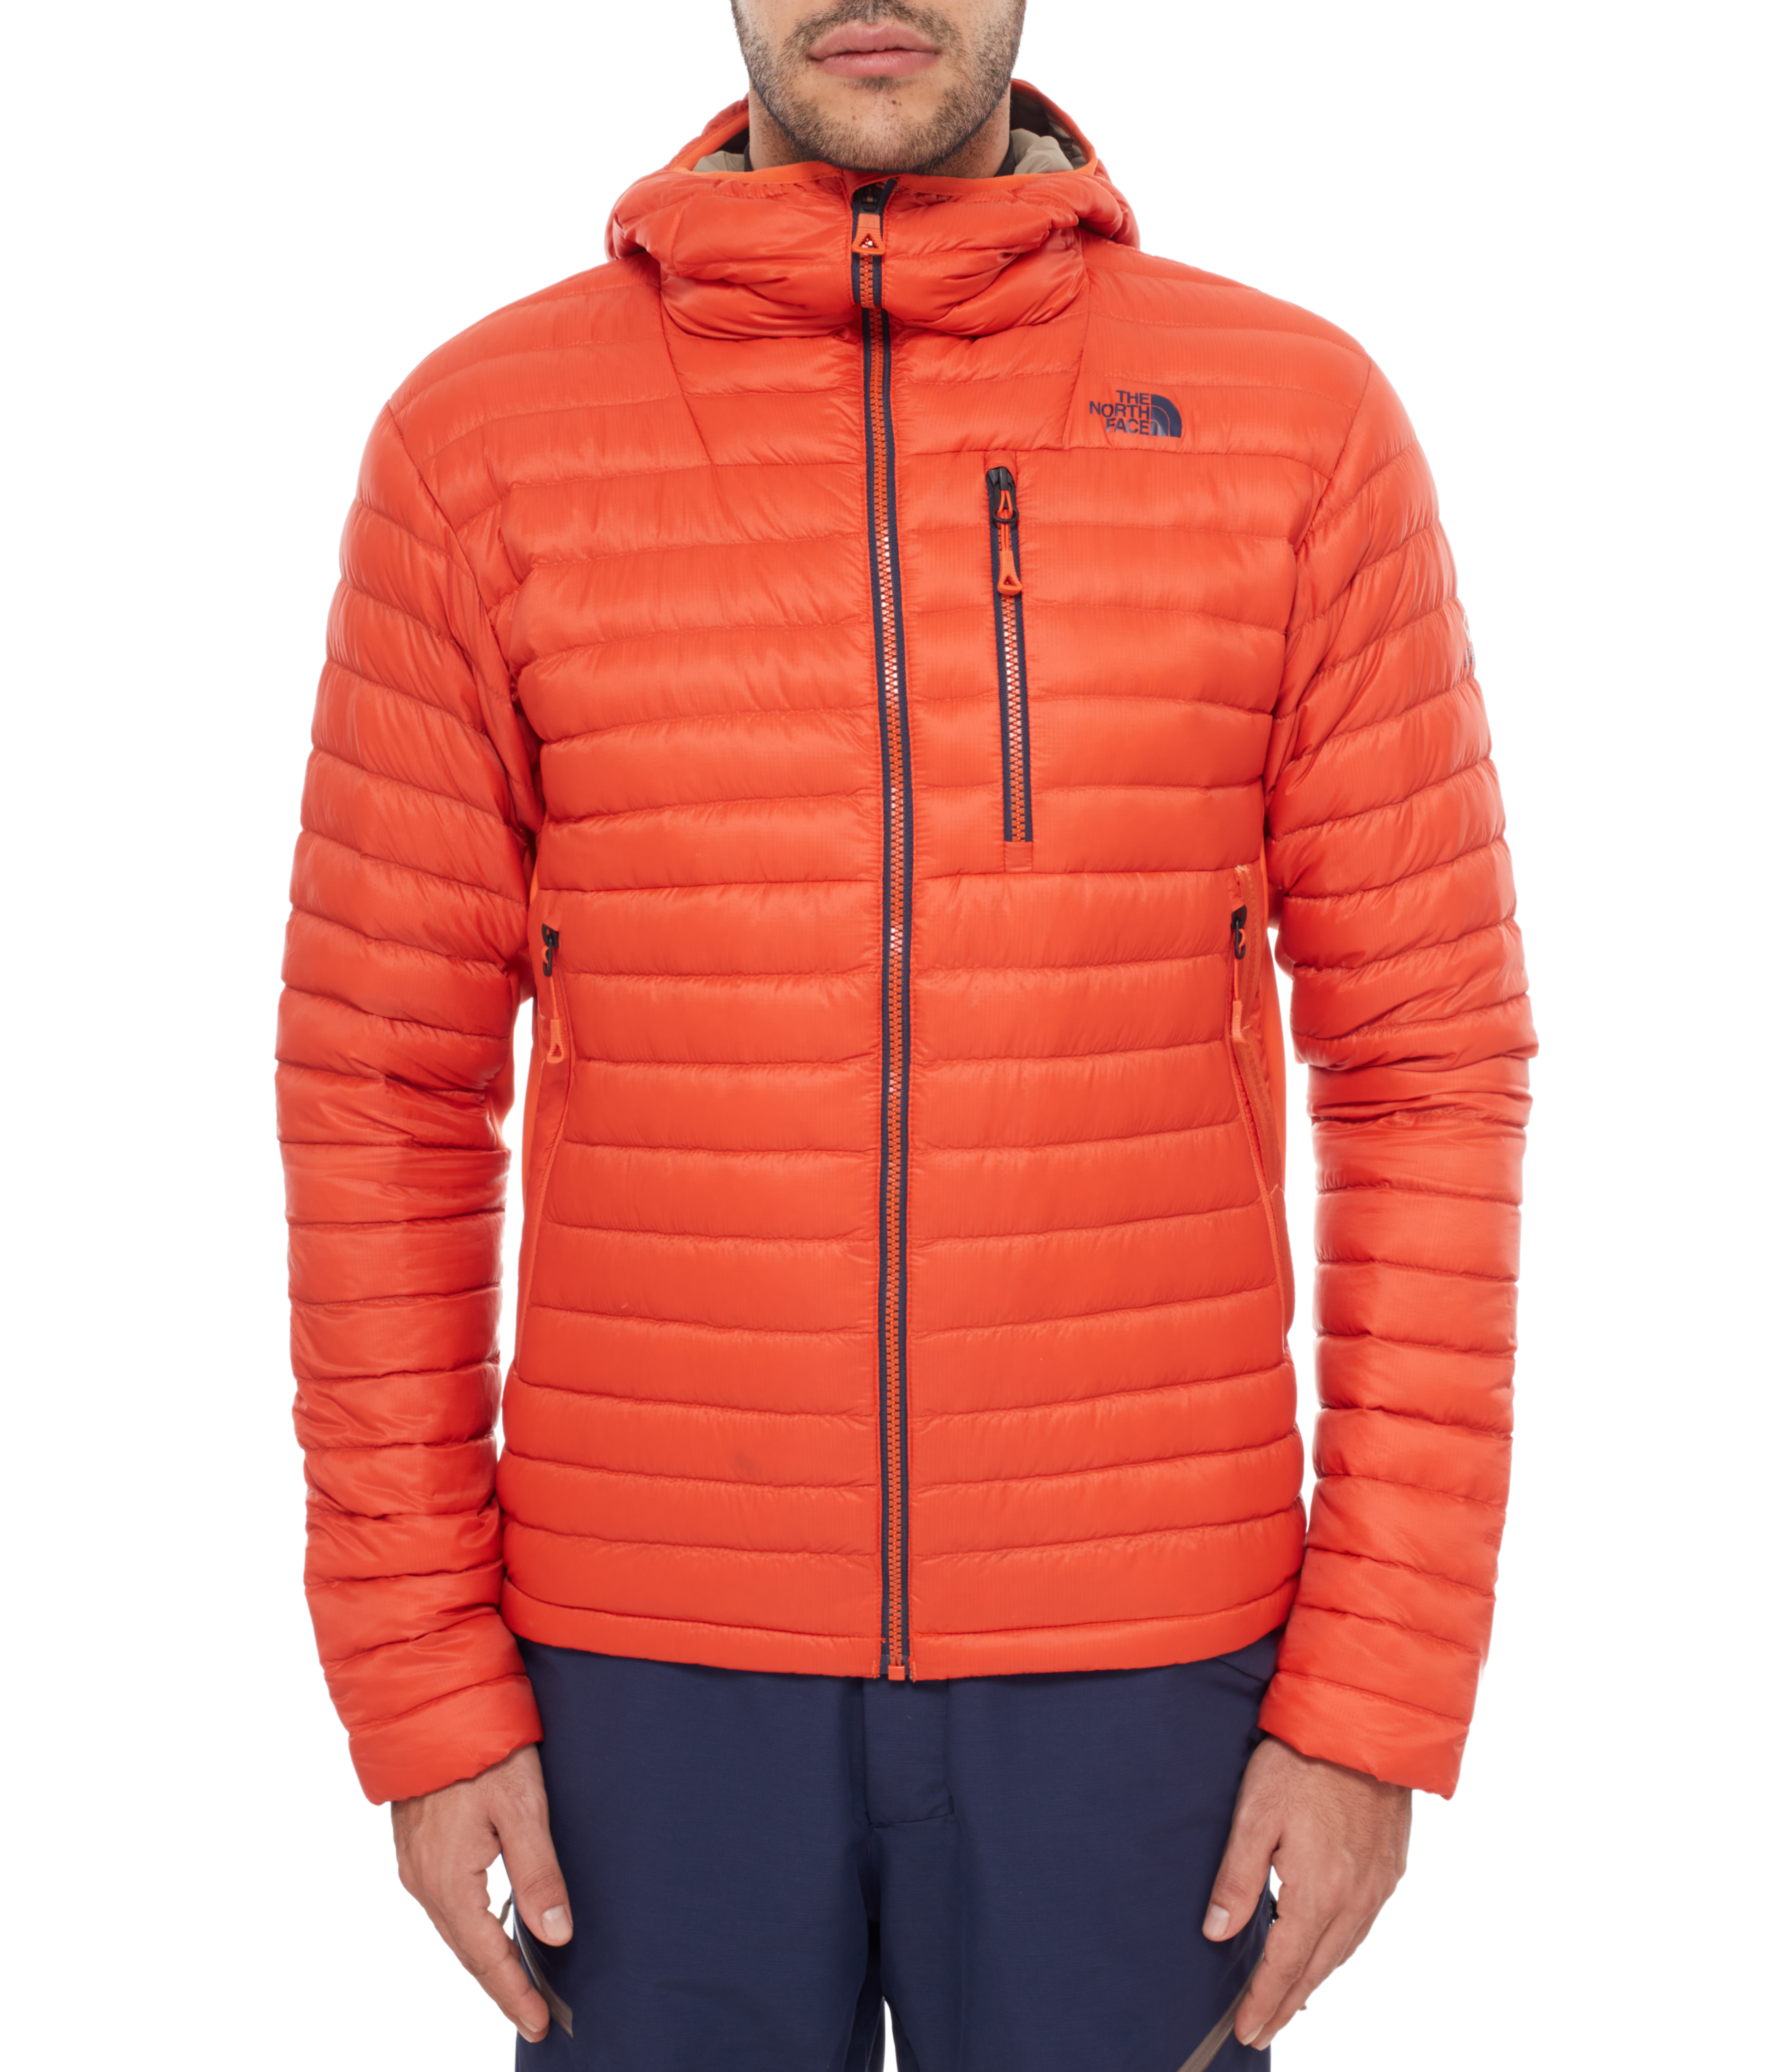 The North Face Low Pro Hybrid Jacket Down Jackets